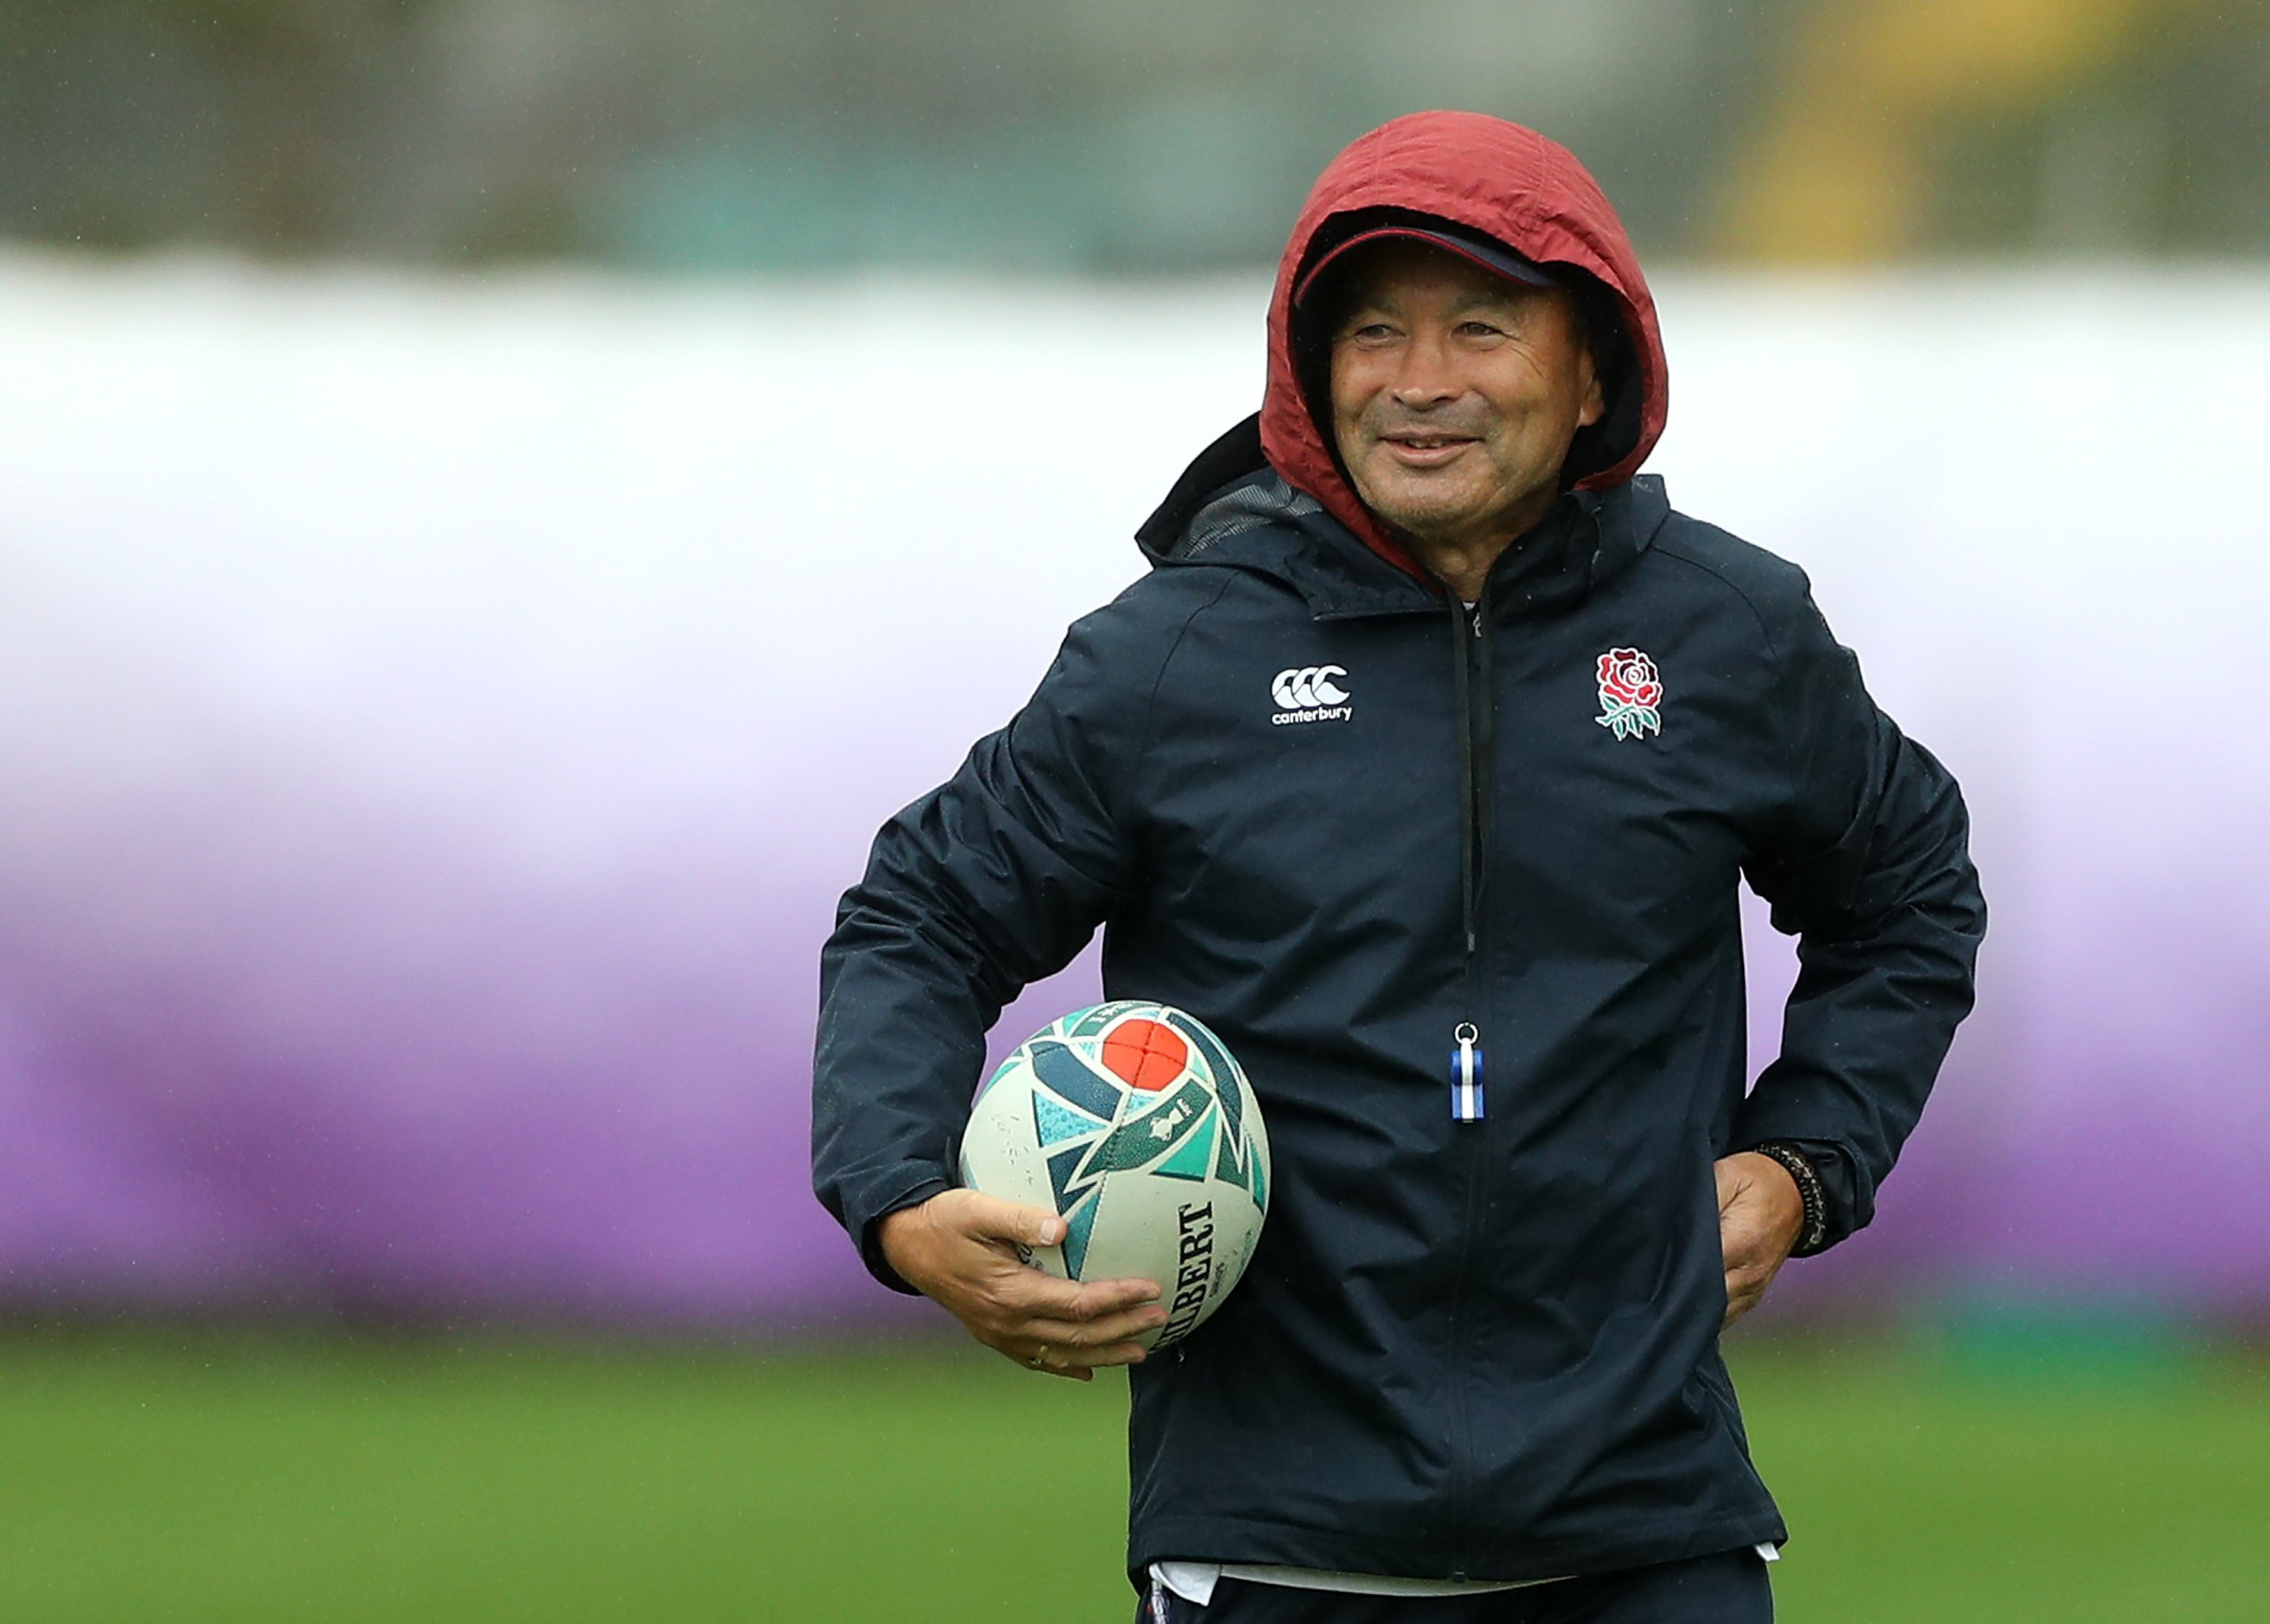 Eddie Jones claims England was spied on ahead of Rugby World Cup clash against New Zealand